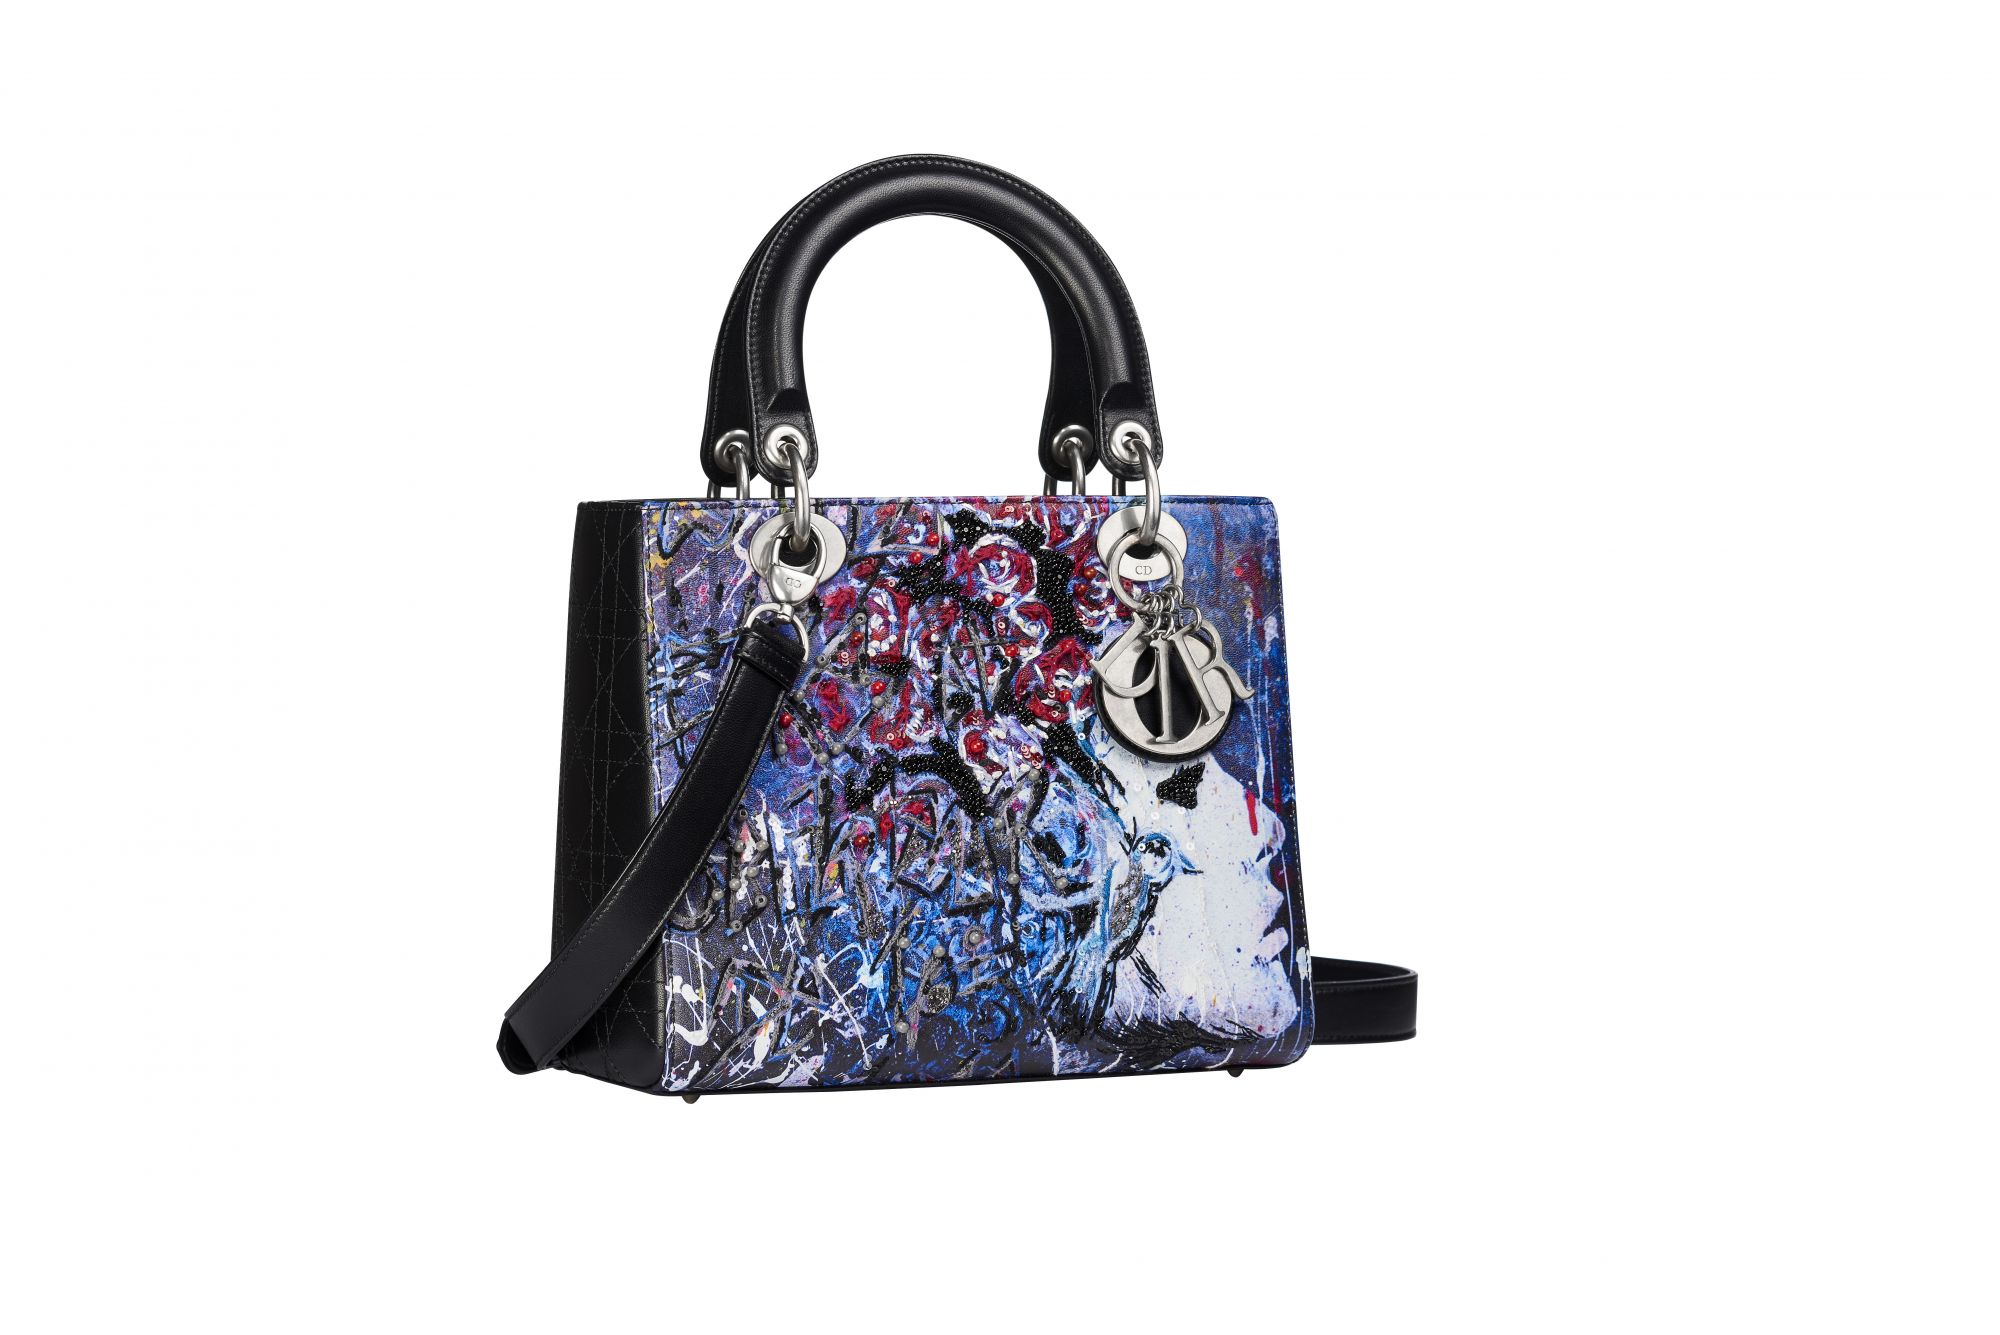 eb4e877255a7 10 Artists Give The Lady Dior A Makeover